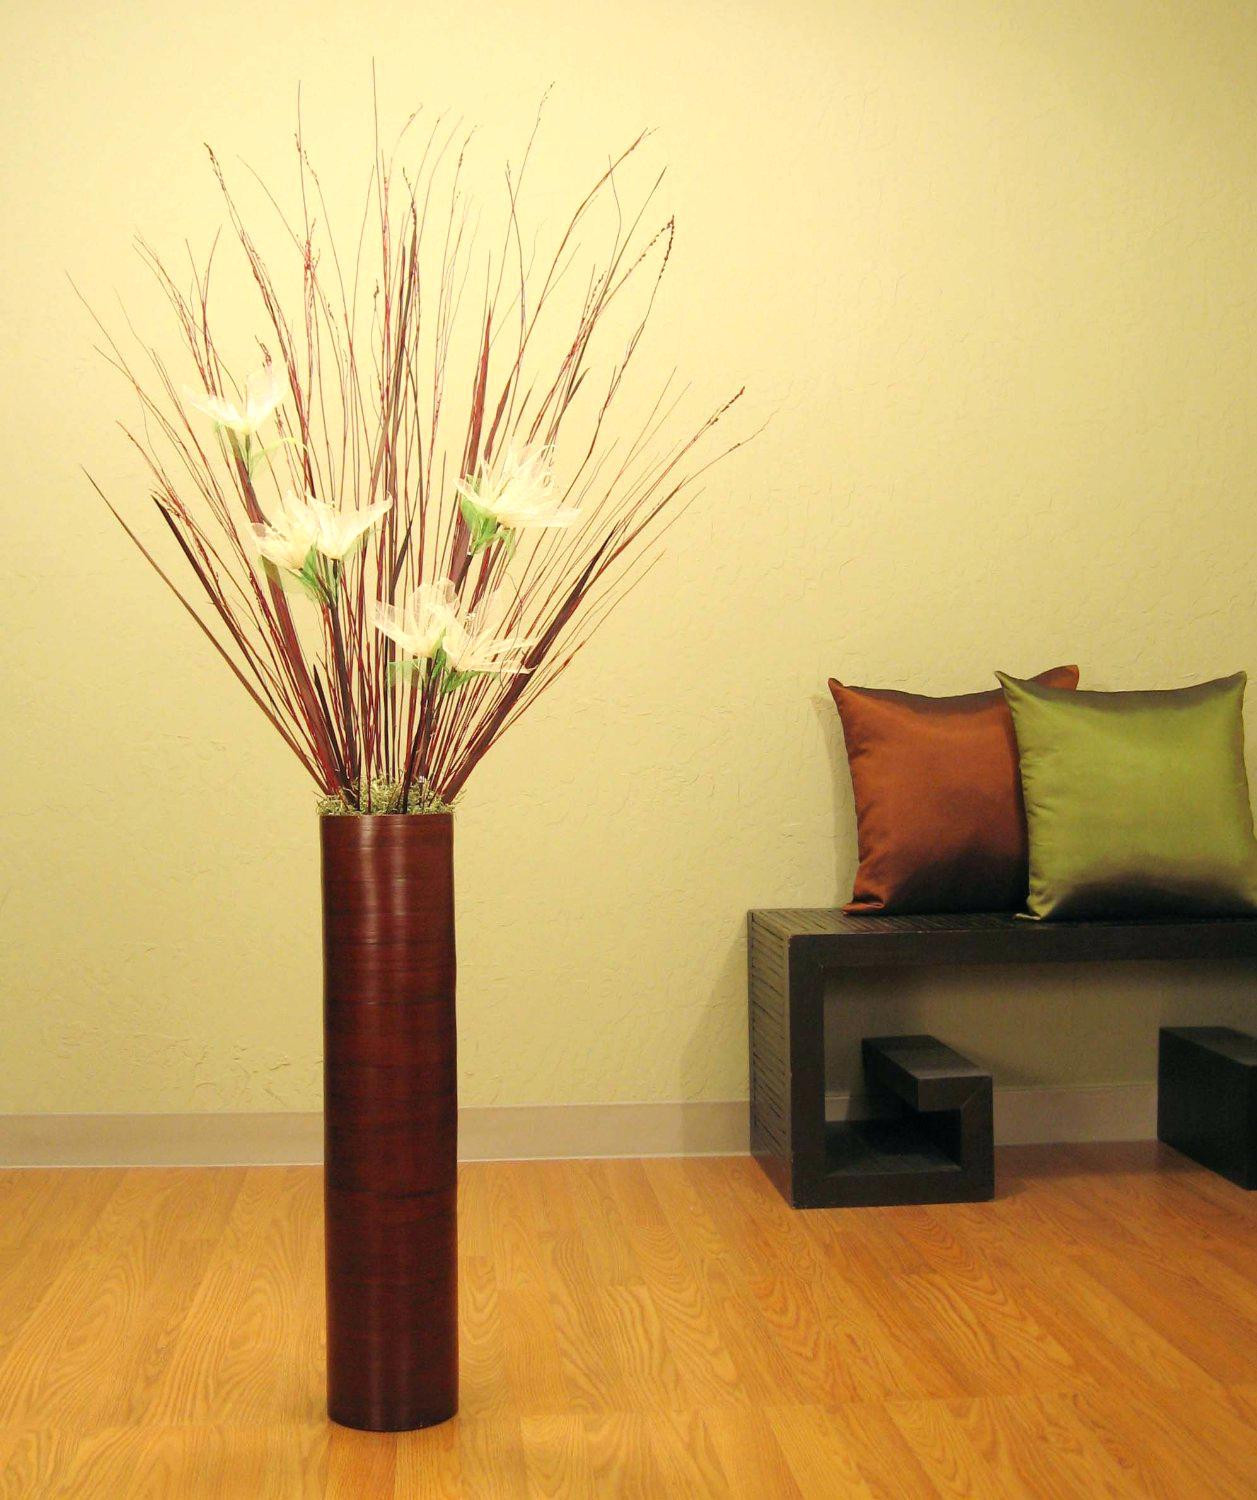 Bamboo Flower Vase Of Large Floor Vase Decor Vases with Bamboo Sticks Kcscienceinc org Regarding Large Floor Vase Decor Vases with Bamboo Sticks